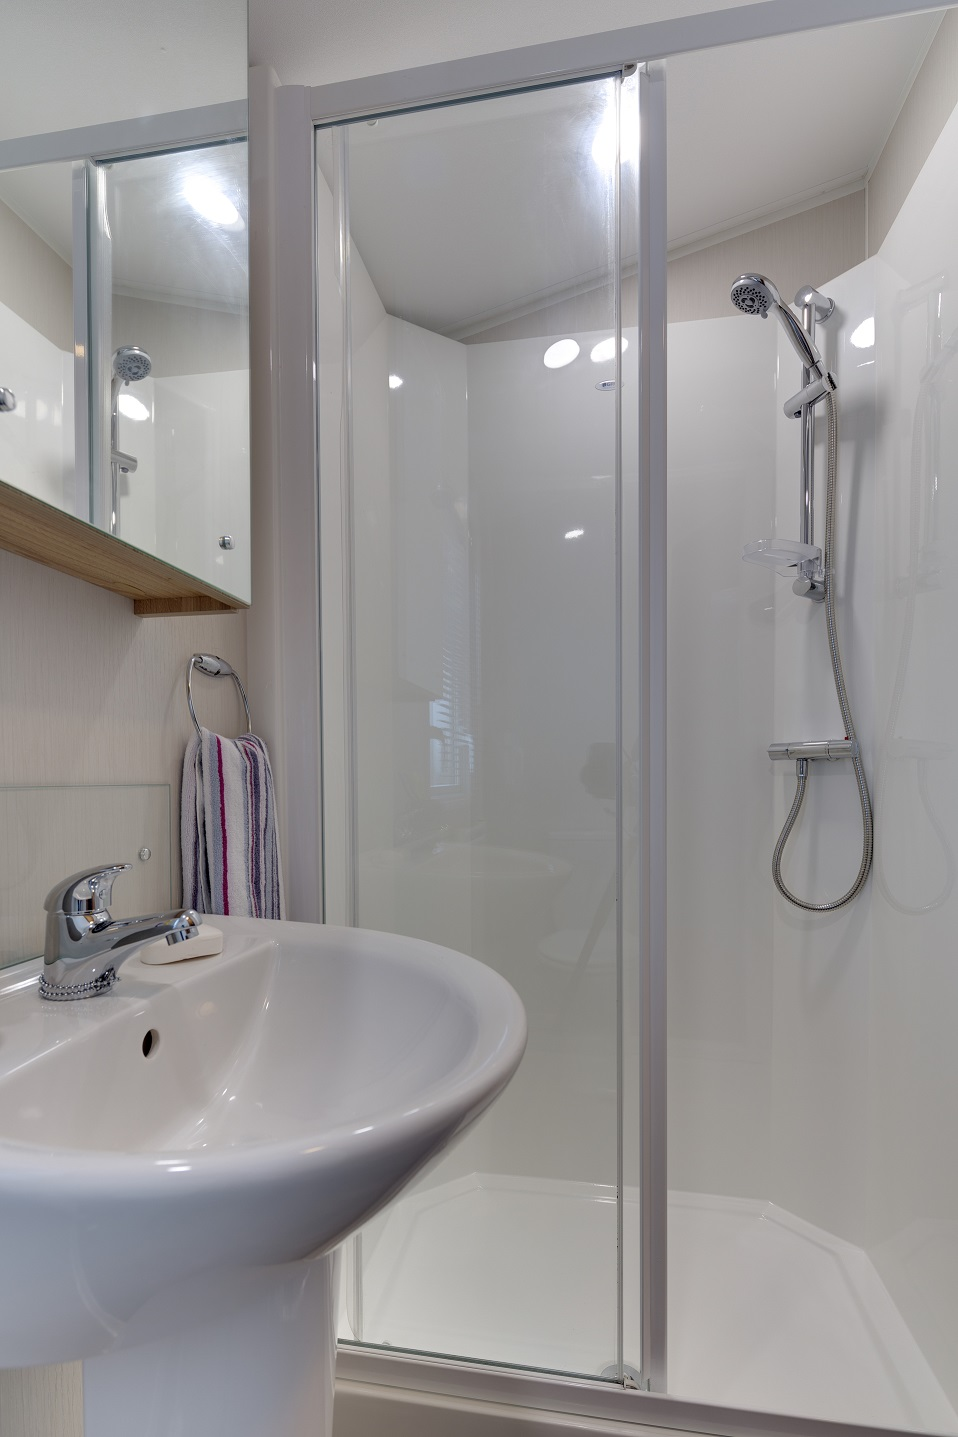 Willerby Brockenhurst: New Static Caravans and Holiday Homes for Sale, Clifton, Morpeth Image 3